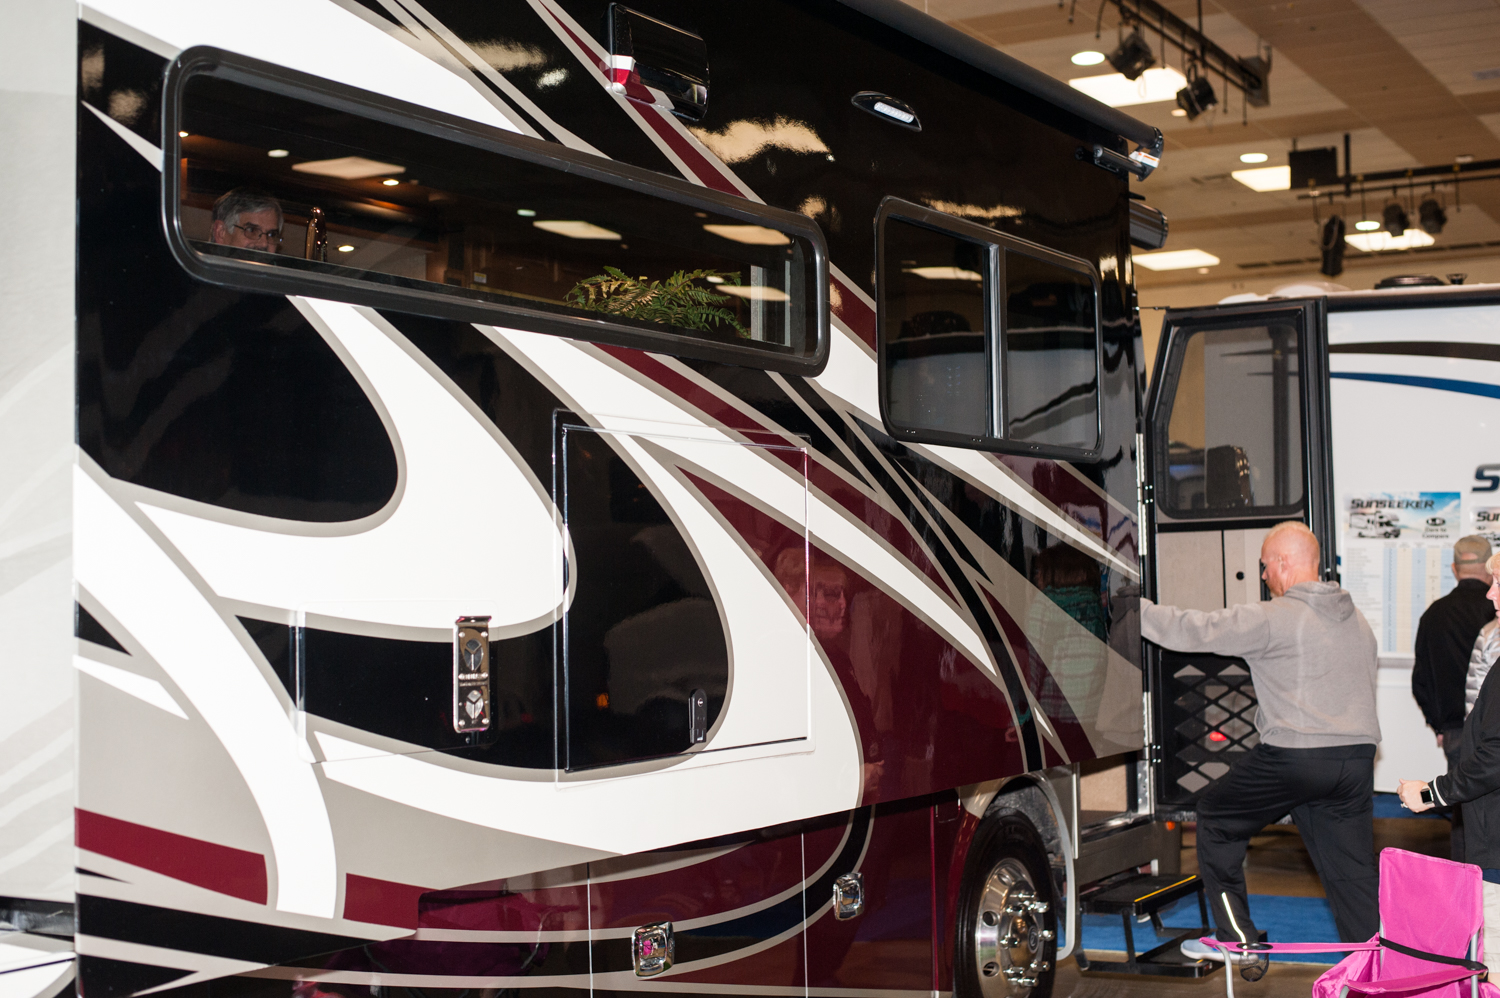 $232,521 - Poulsbo RV's 2019 Tiffin Breeze 33BR. The Tacoma RV Show is happening this weekend (Jan. 17-20) at the Tacoma Dome, with hundreds of RV's on display and more than 100 brands at the show. Since we are Seattle 'Refined' - you know we had to check out the most expensive, swankiest vehicles at the show! (Image: Elizabeth Crook / Seattle Refined)